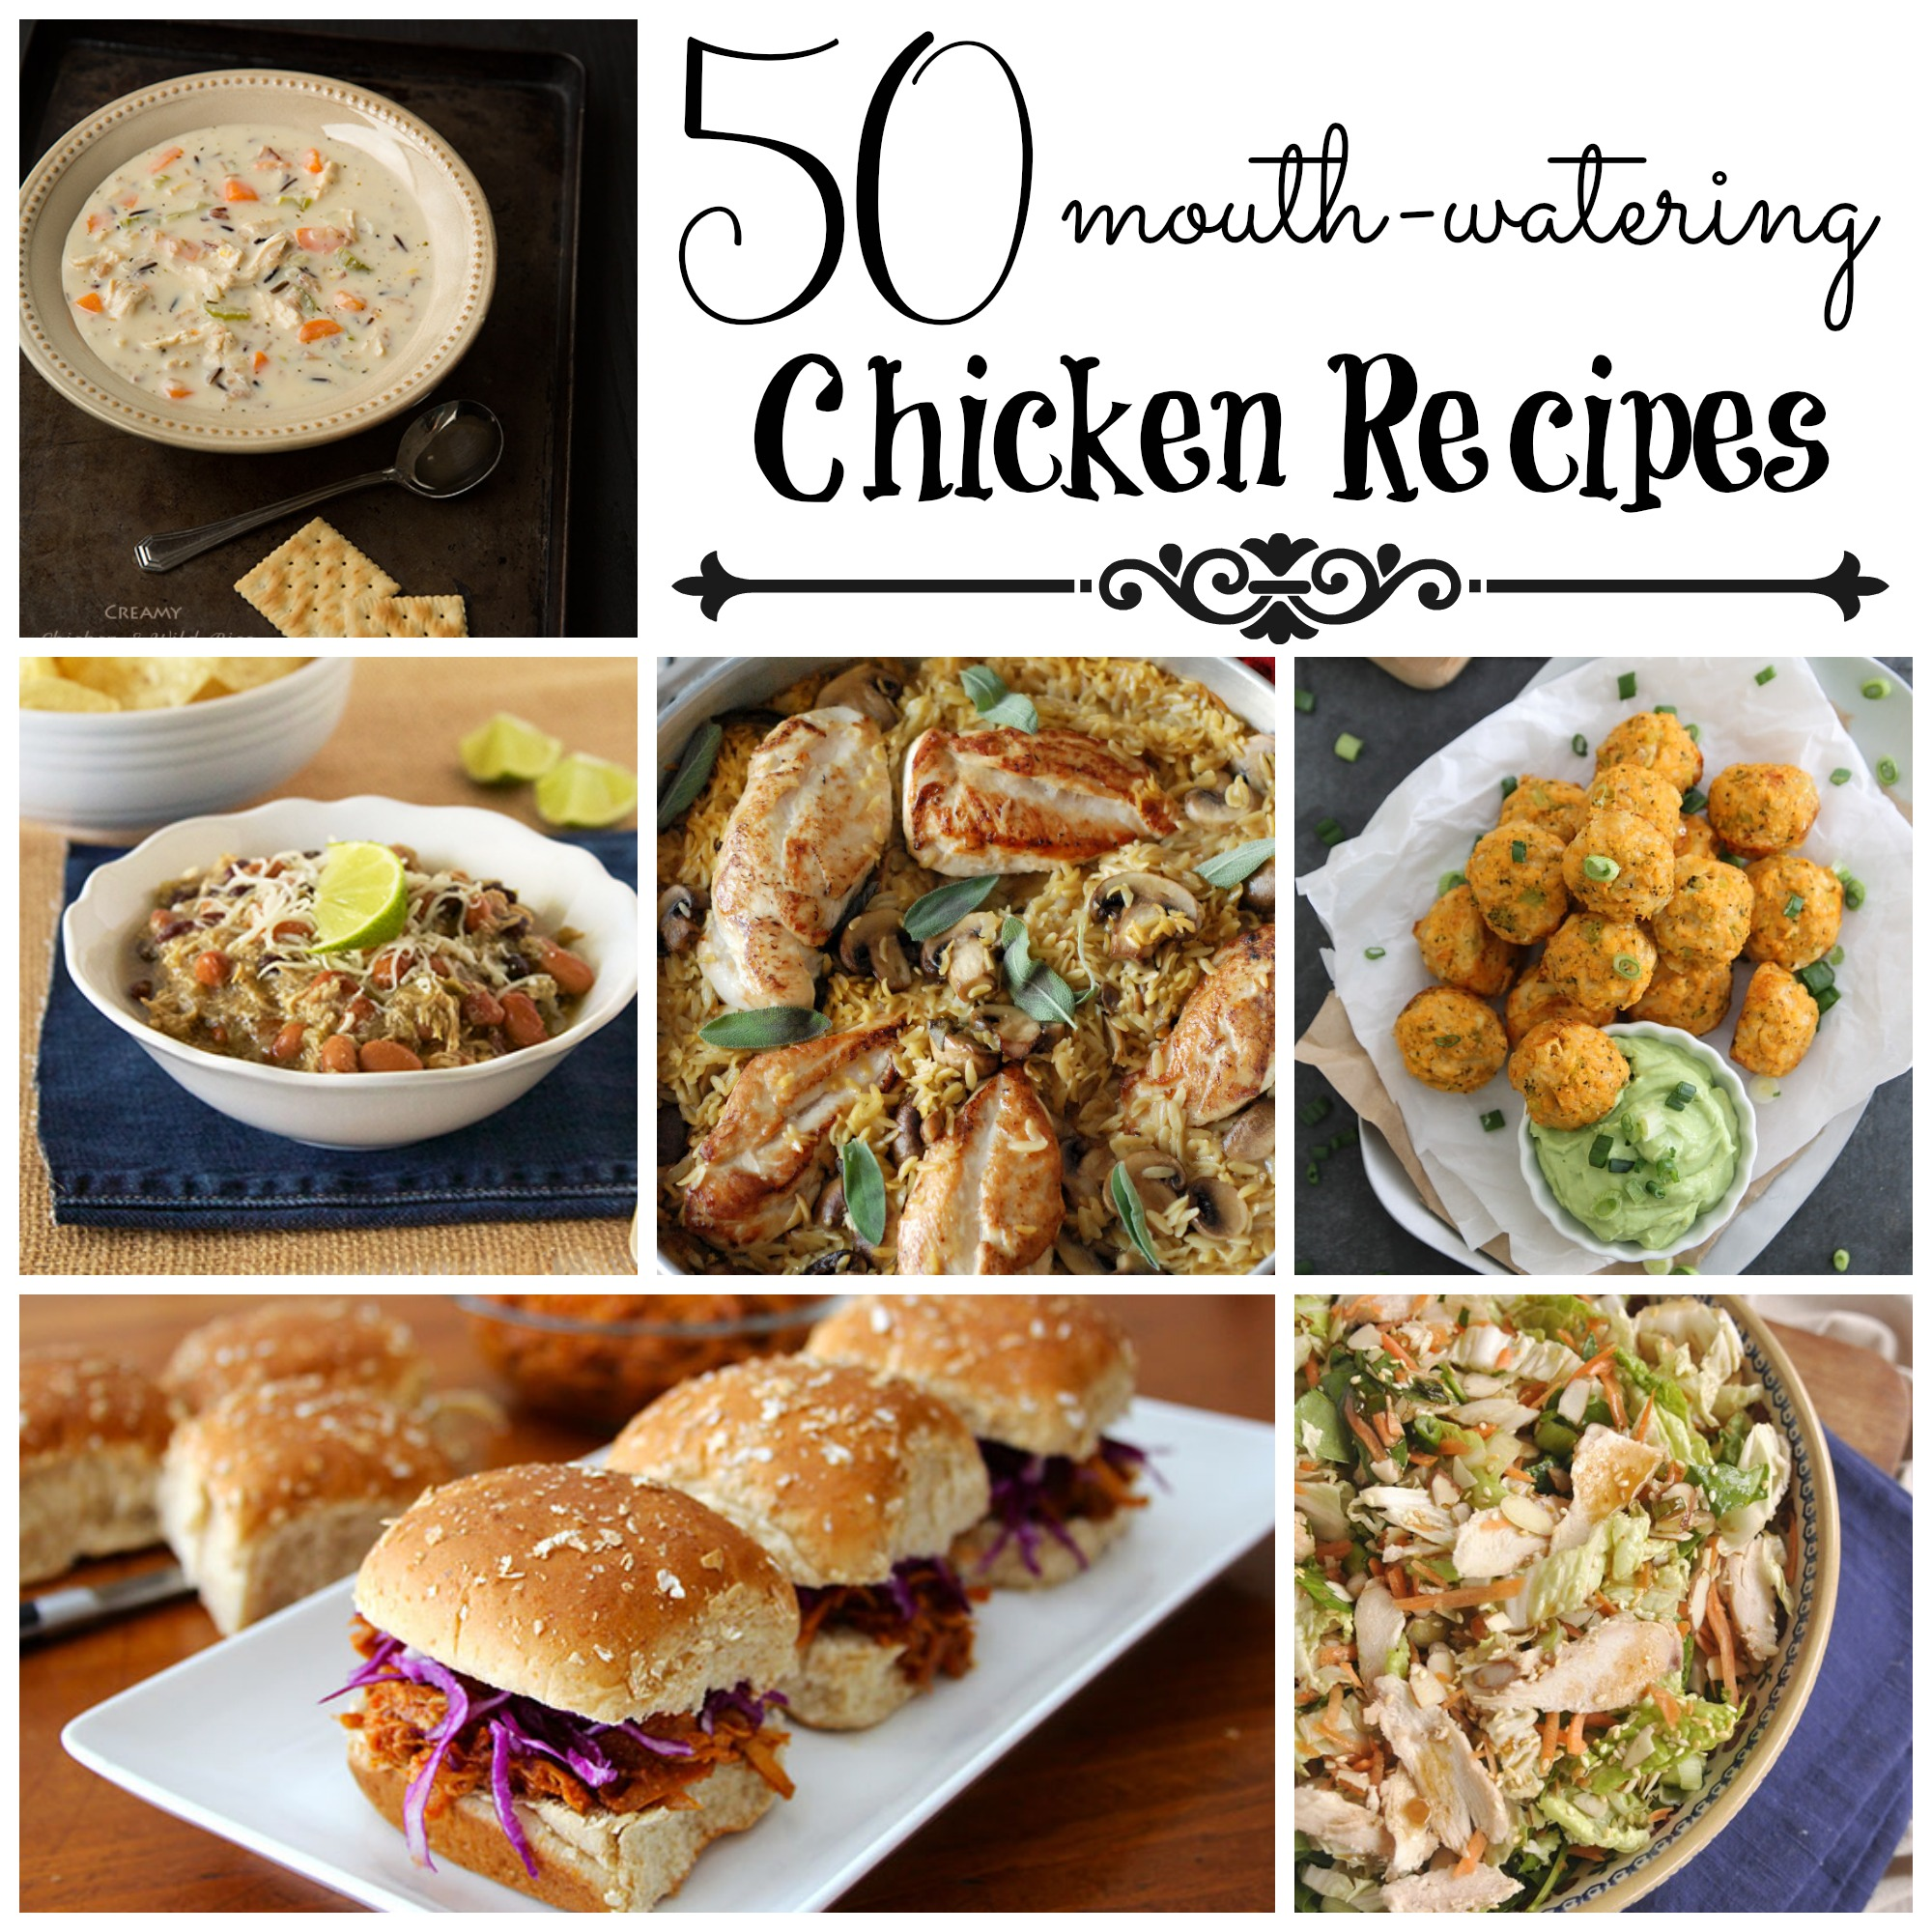 50 mouth-watering Chicken Recipes - Cooking With Ruthie